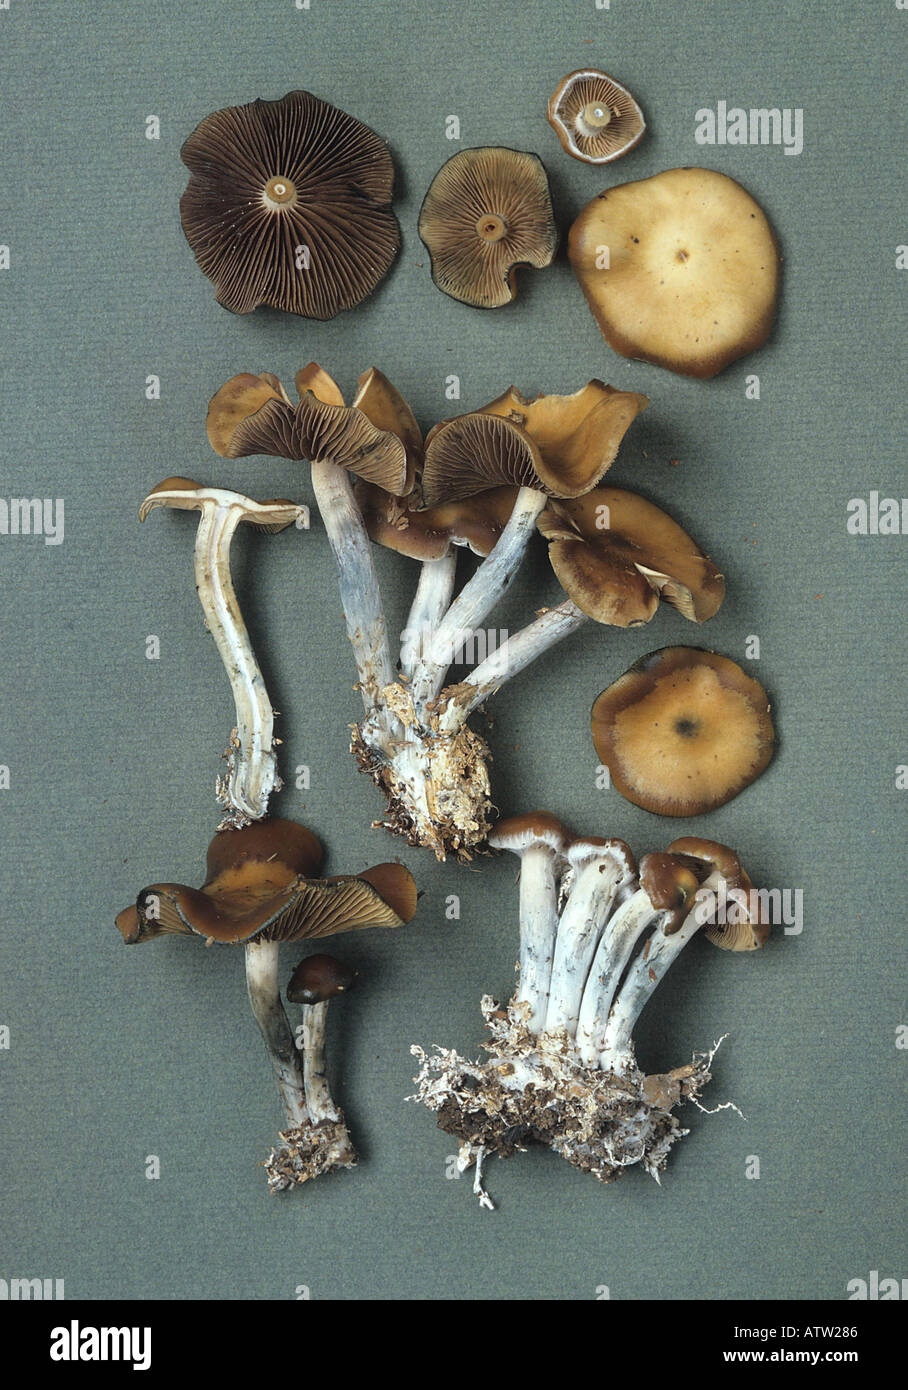 Cyanescens Stock Photos & Cyanescens Stock Images - Alamy